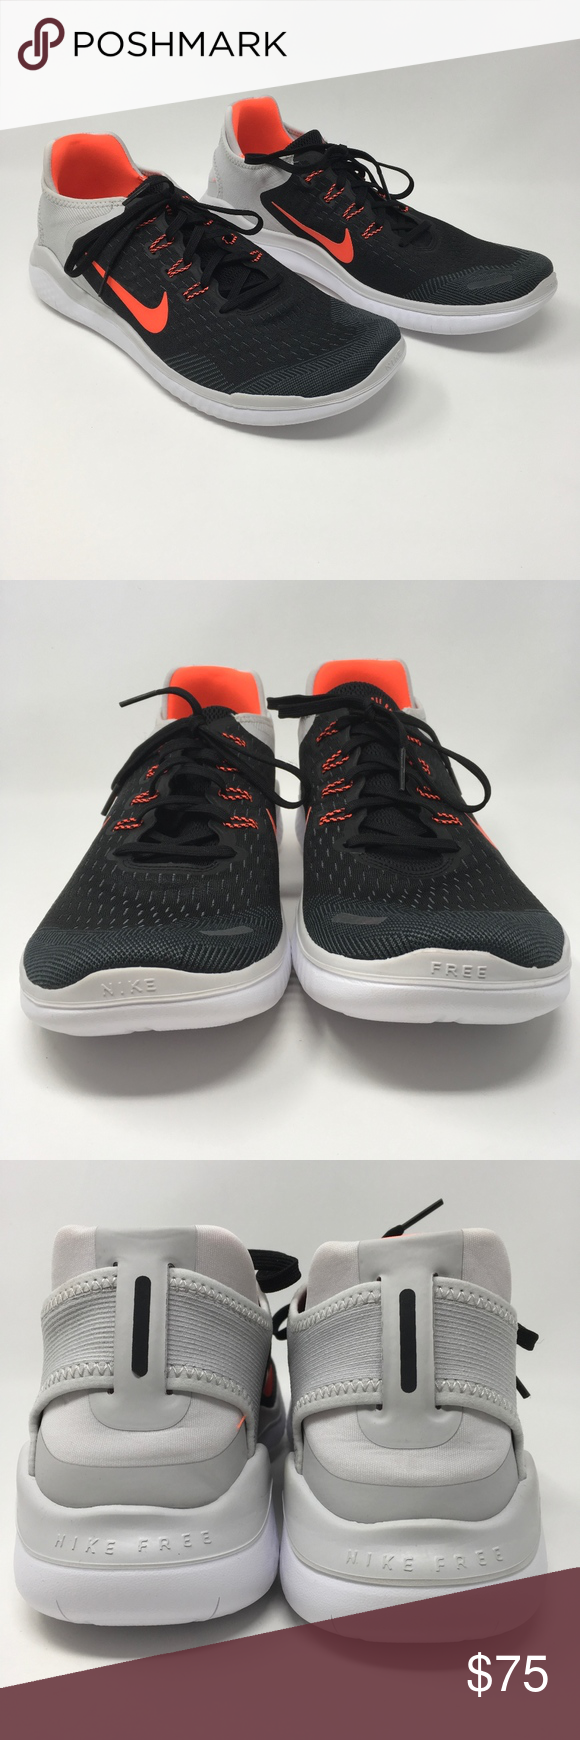 2aed15eec46 Nike Free RN 2018 Running Shoes 942836-005 Sz 12 These mens Nike shoes are